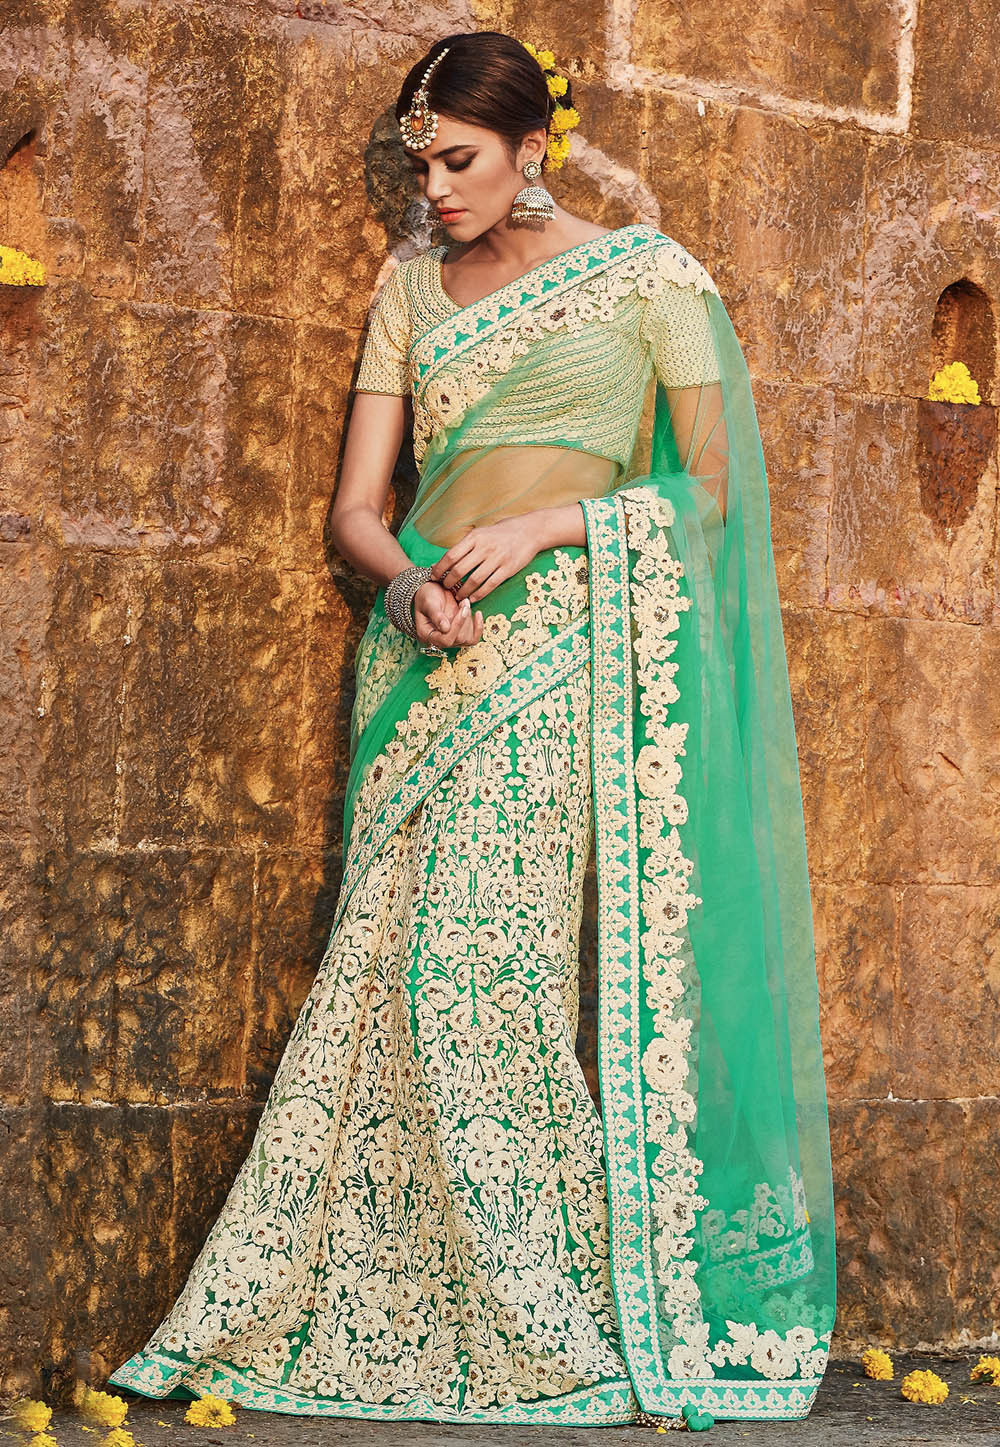 12 Indian Bridal Lehenga Style Sarees For The Modern Brides - Stylish Clothes for Women